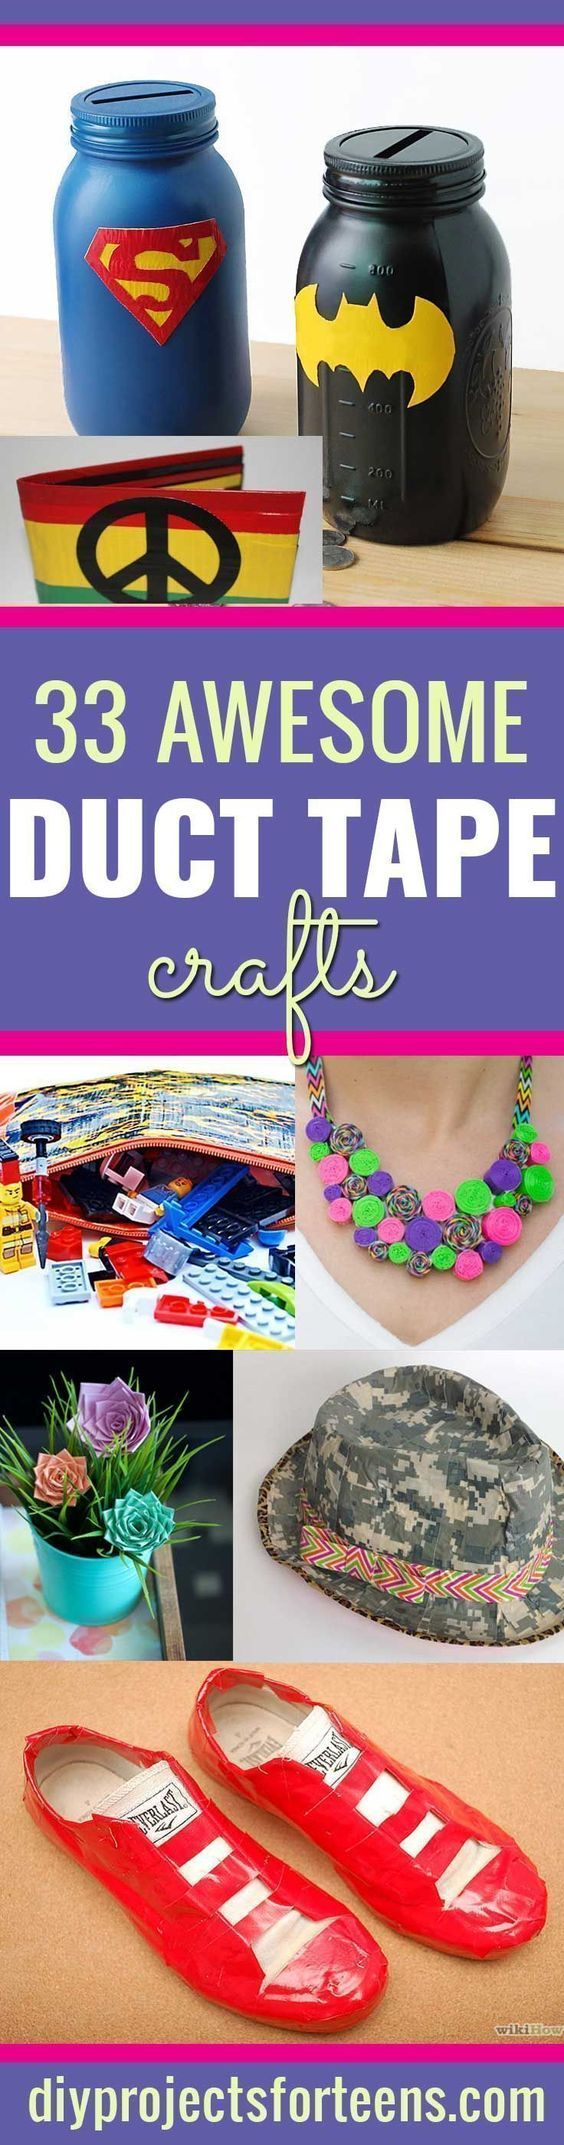 Fun  Duct Tape Crafts Ideas for DIY Home Decor, Fashion and Accessories  | Cool DIY Projects for Teens, Tweens and Teenagers | http://diyprojectsforteens.com/duct-tape-projects/